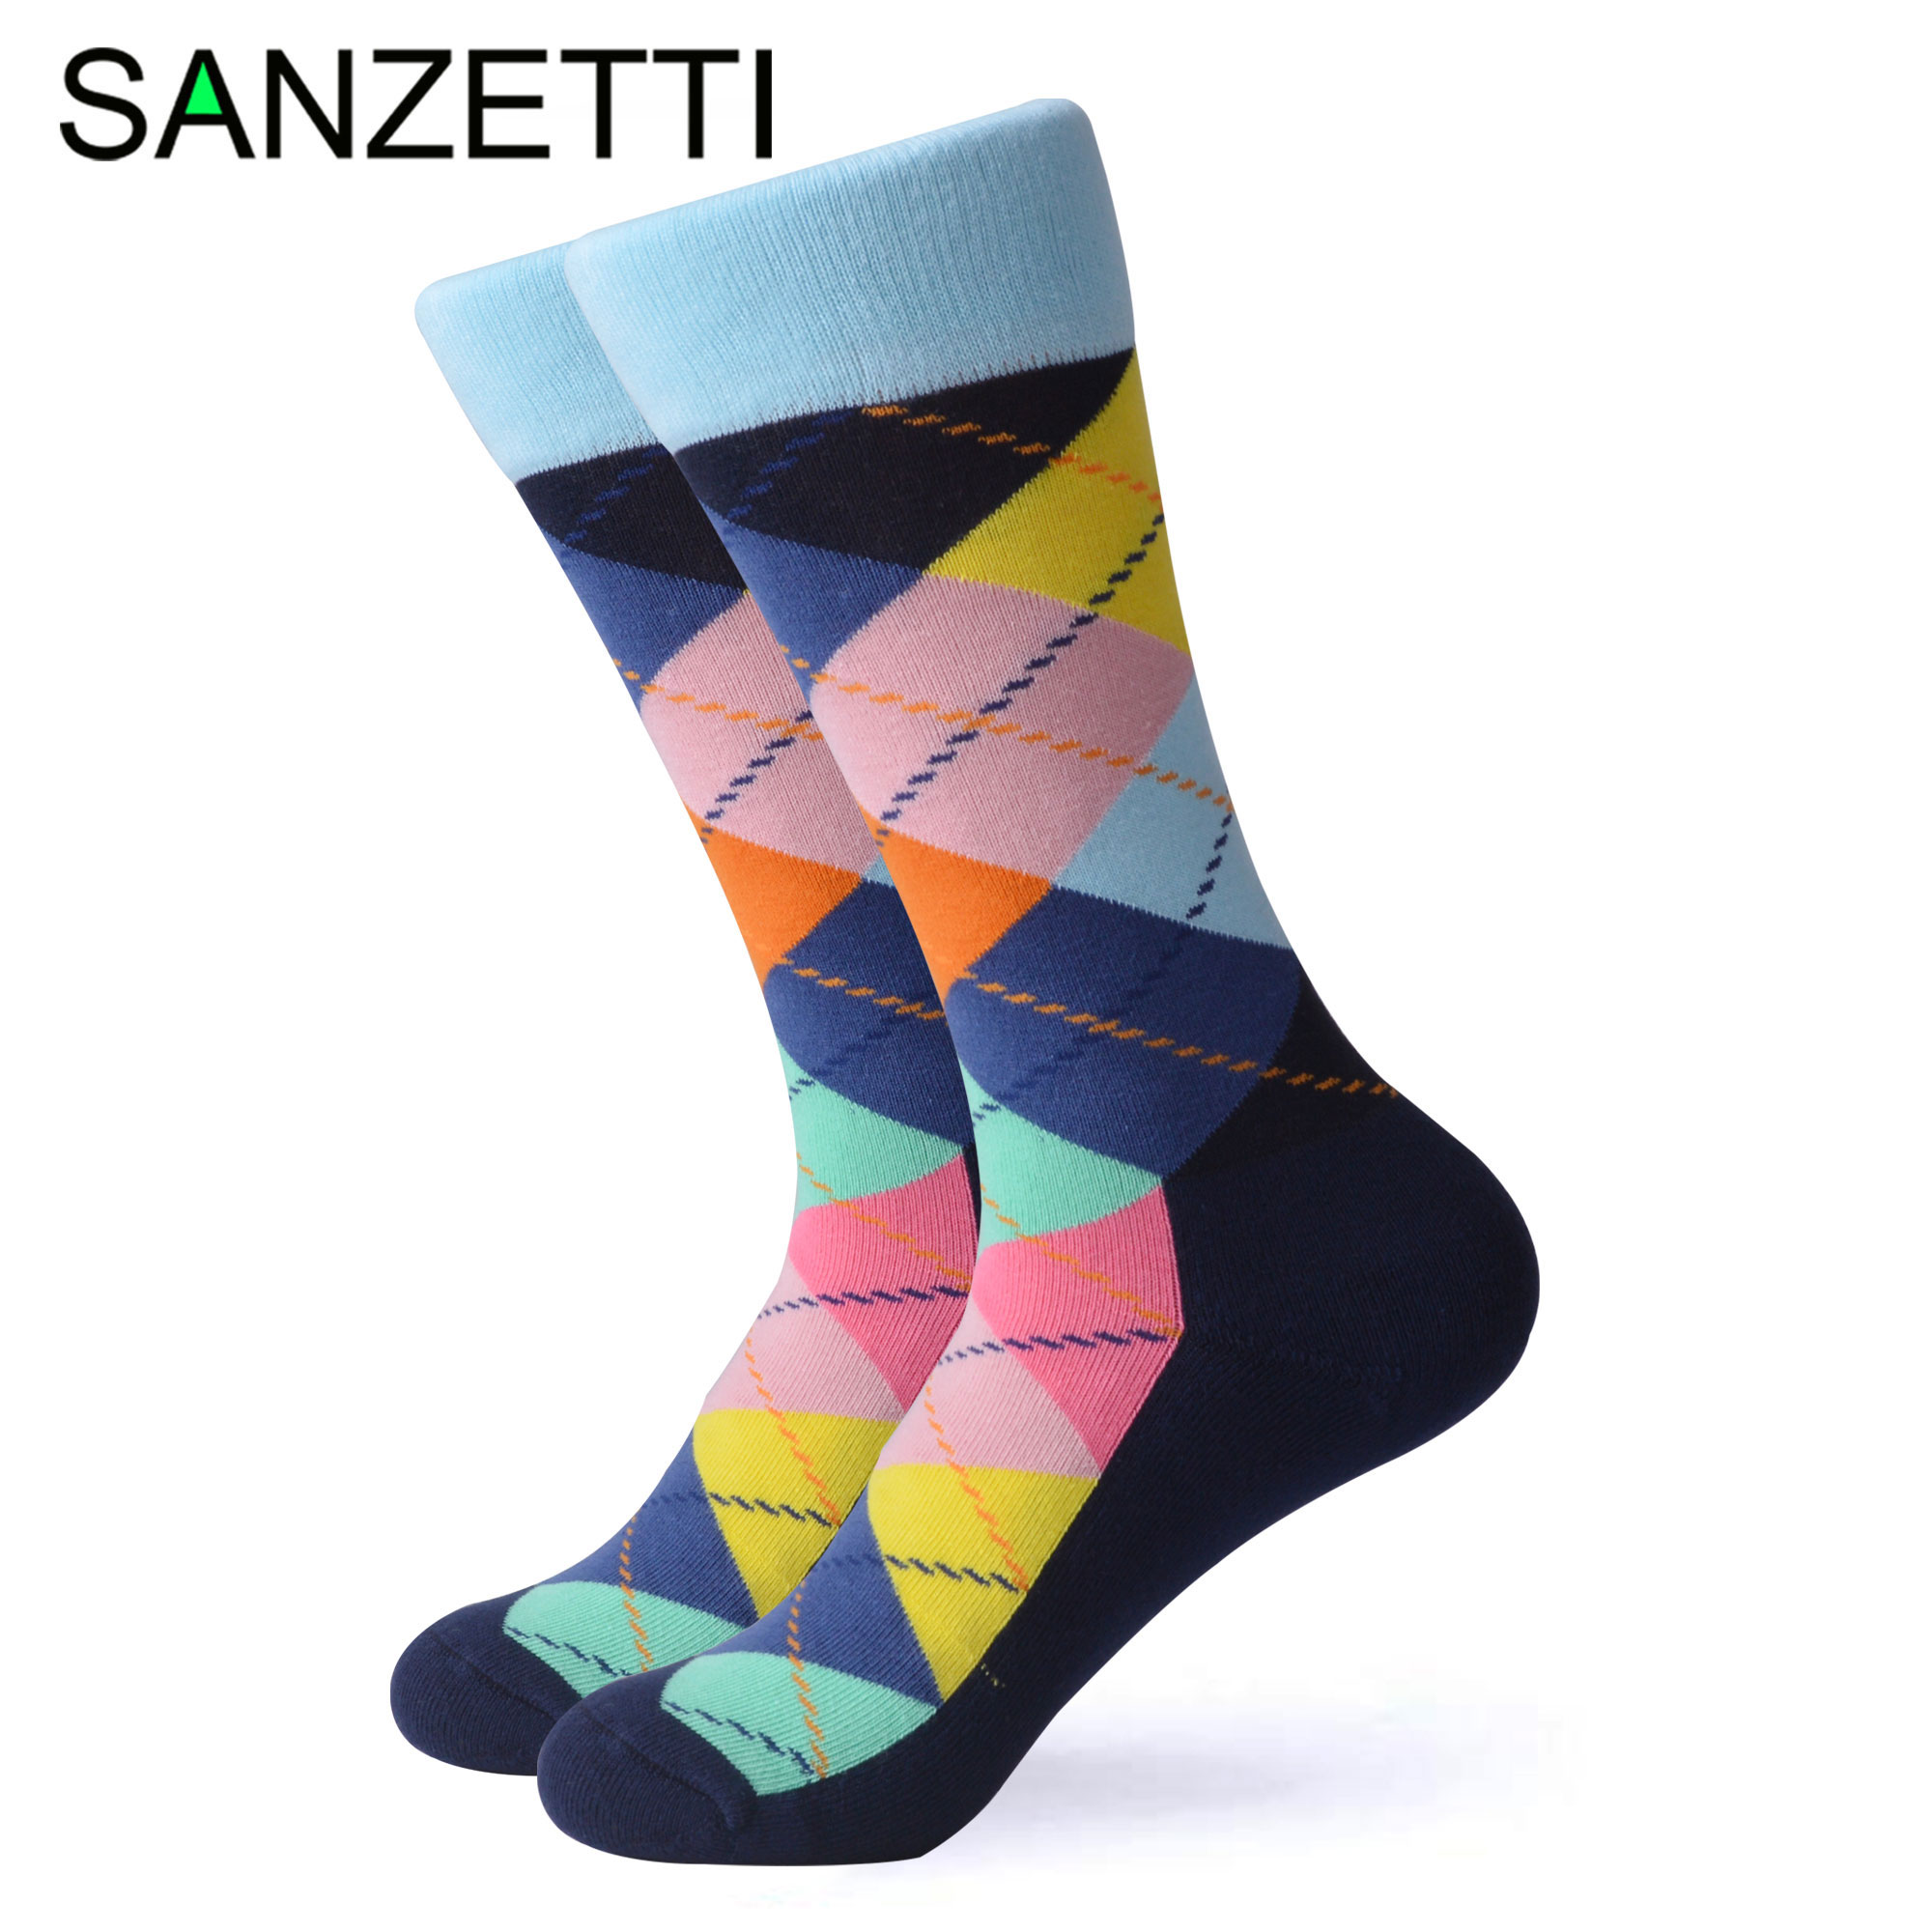 SANZETTI 1 Pair Happy Terry Socks High Quality Men's Colorful Comfortable Combed Cotton Bright Novelty Fun Wedding Dress Socks